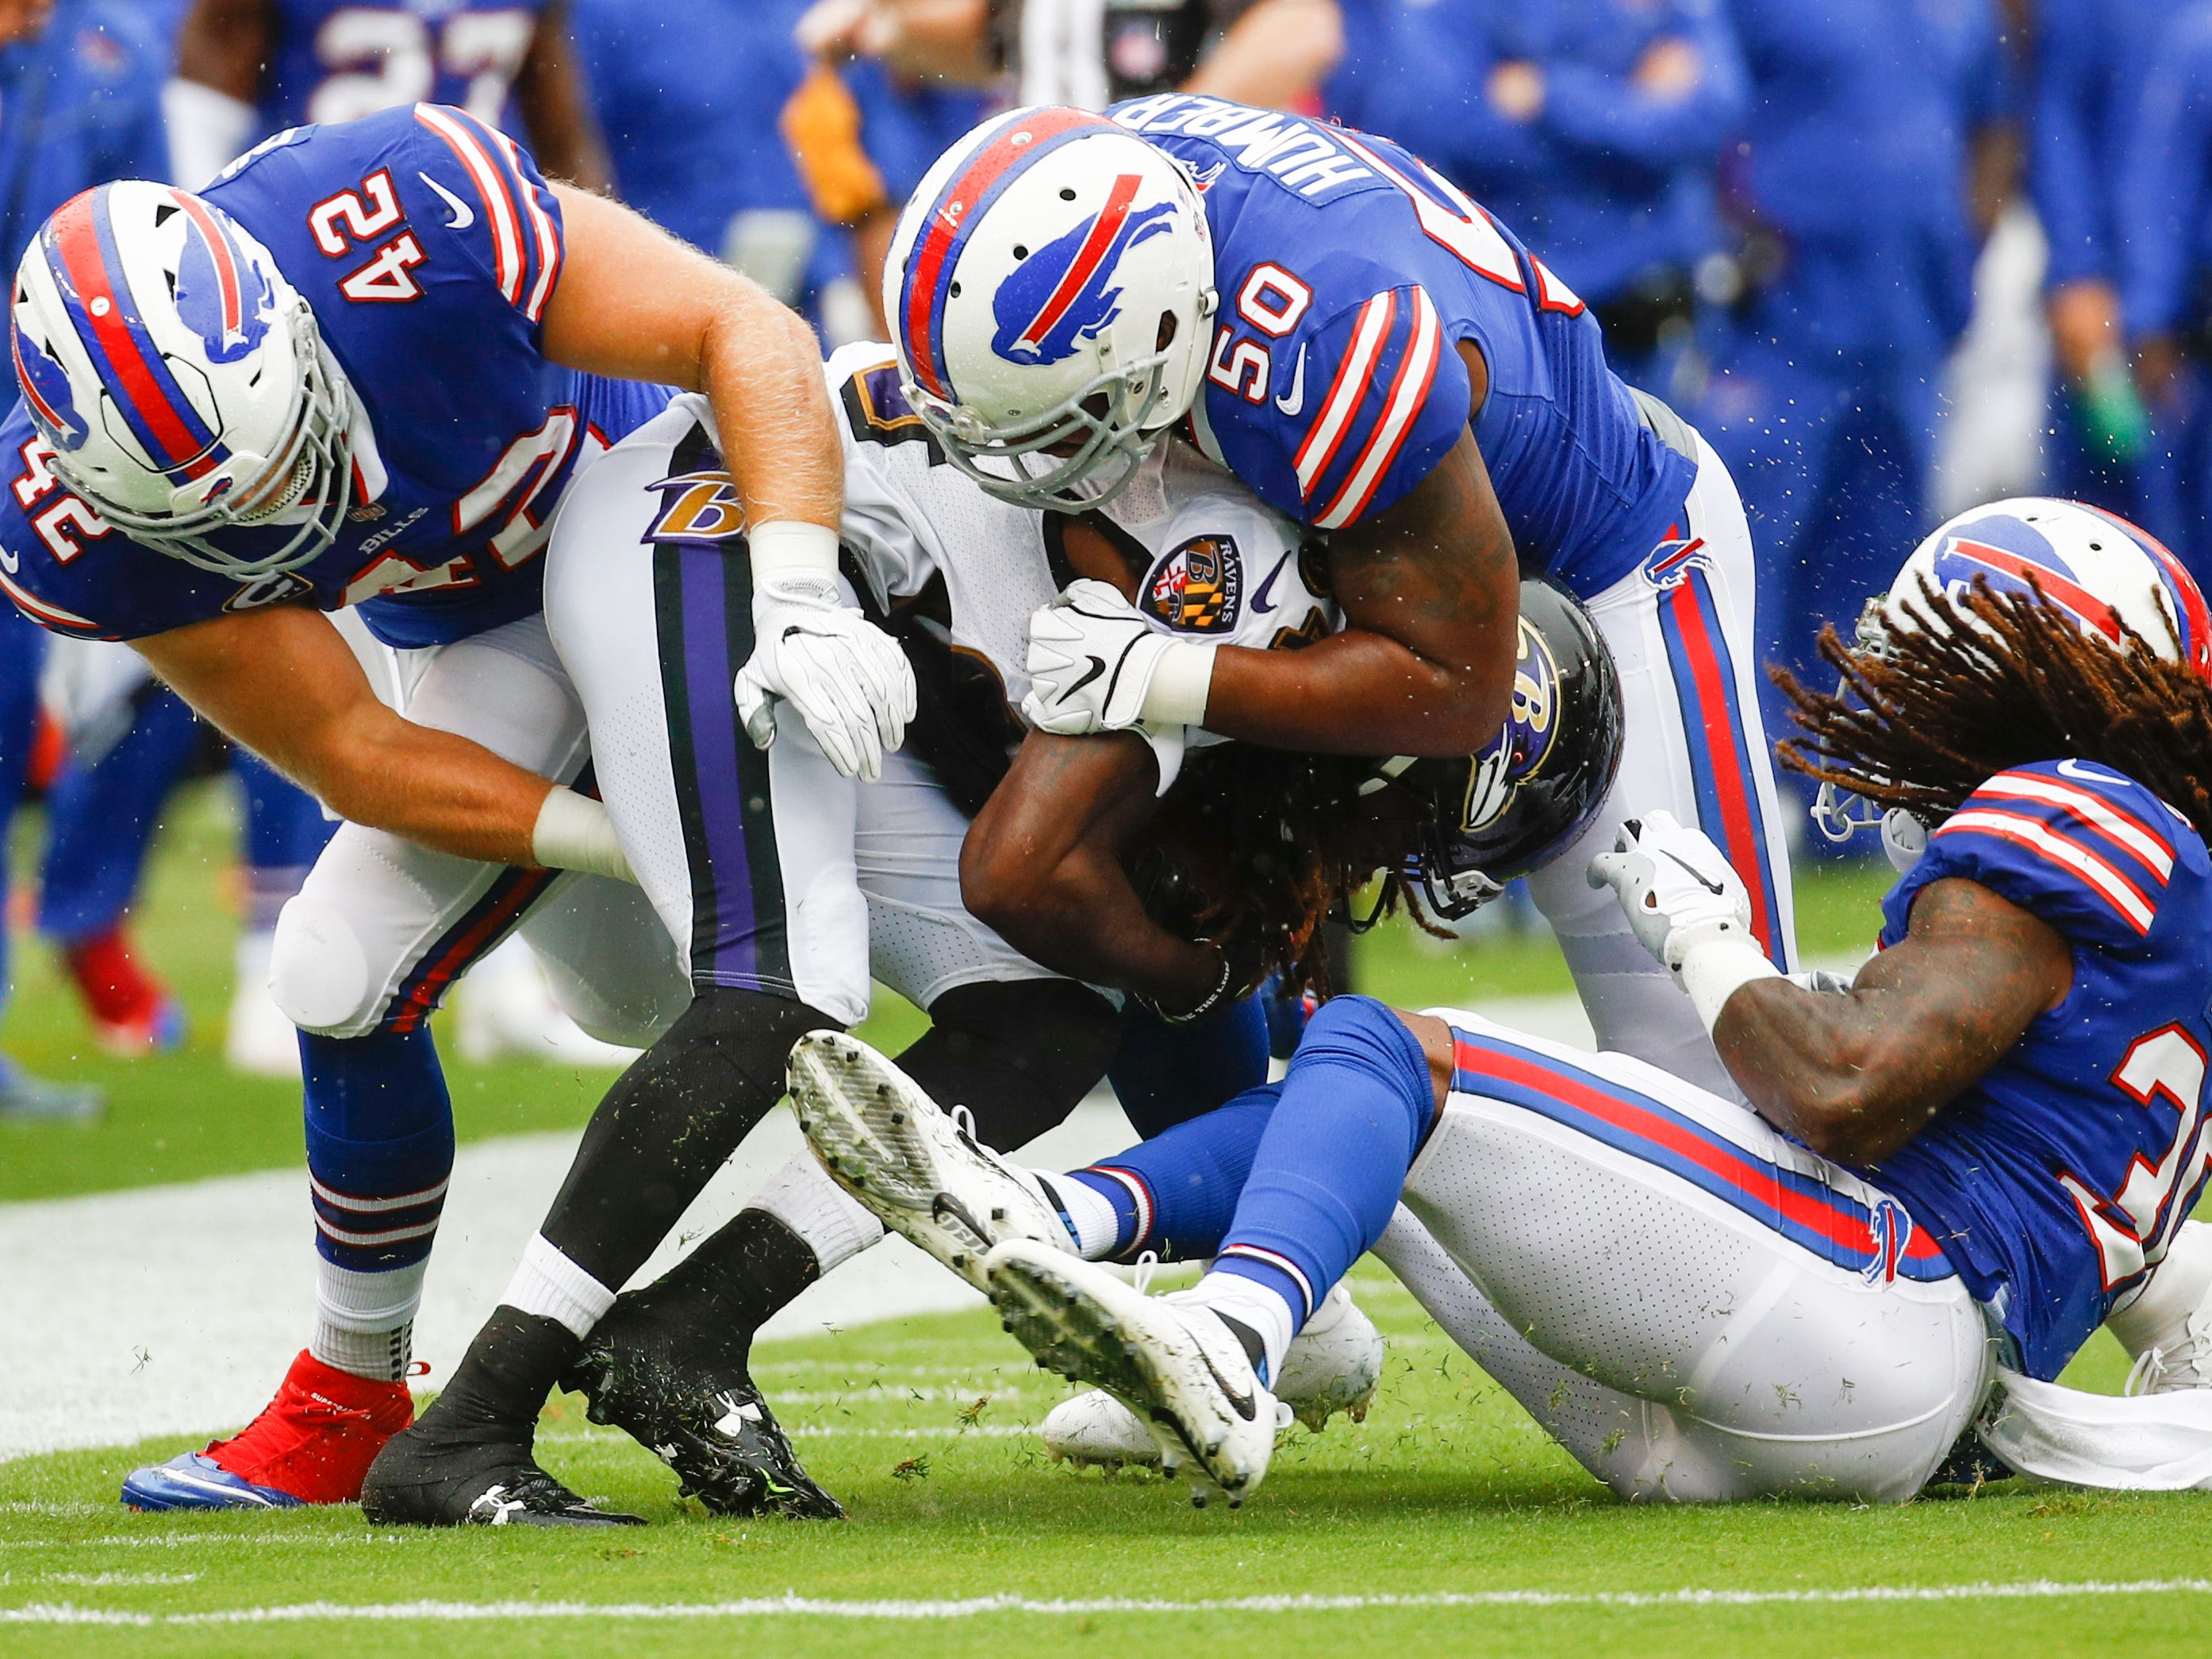 Baltimore Ravens wide receiver Janarion Grant (84) is stopped by Buffalo Bills running back Patrick DiMarco (42), linebacker Ramon Humber (50) and cornerback Lafayette Pitts (30) during the first half of an NFL football game between the Baltimore Ravens and the Buffalo Bills, Sunday, Sept. 9, 2018 in Baltimore.